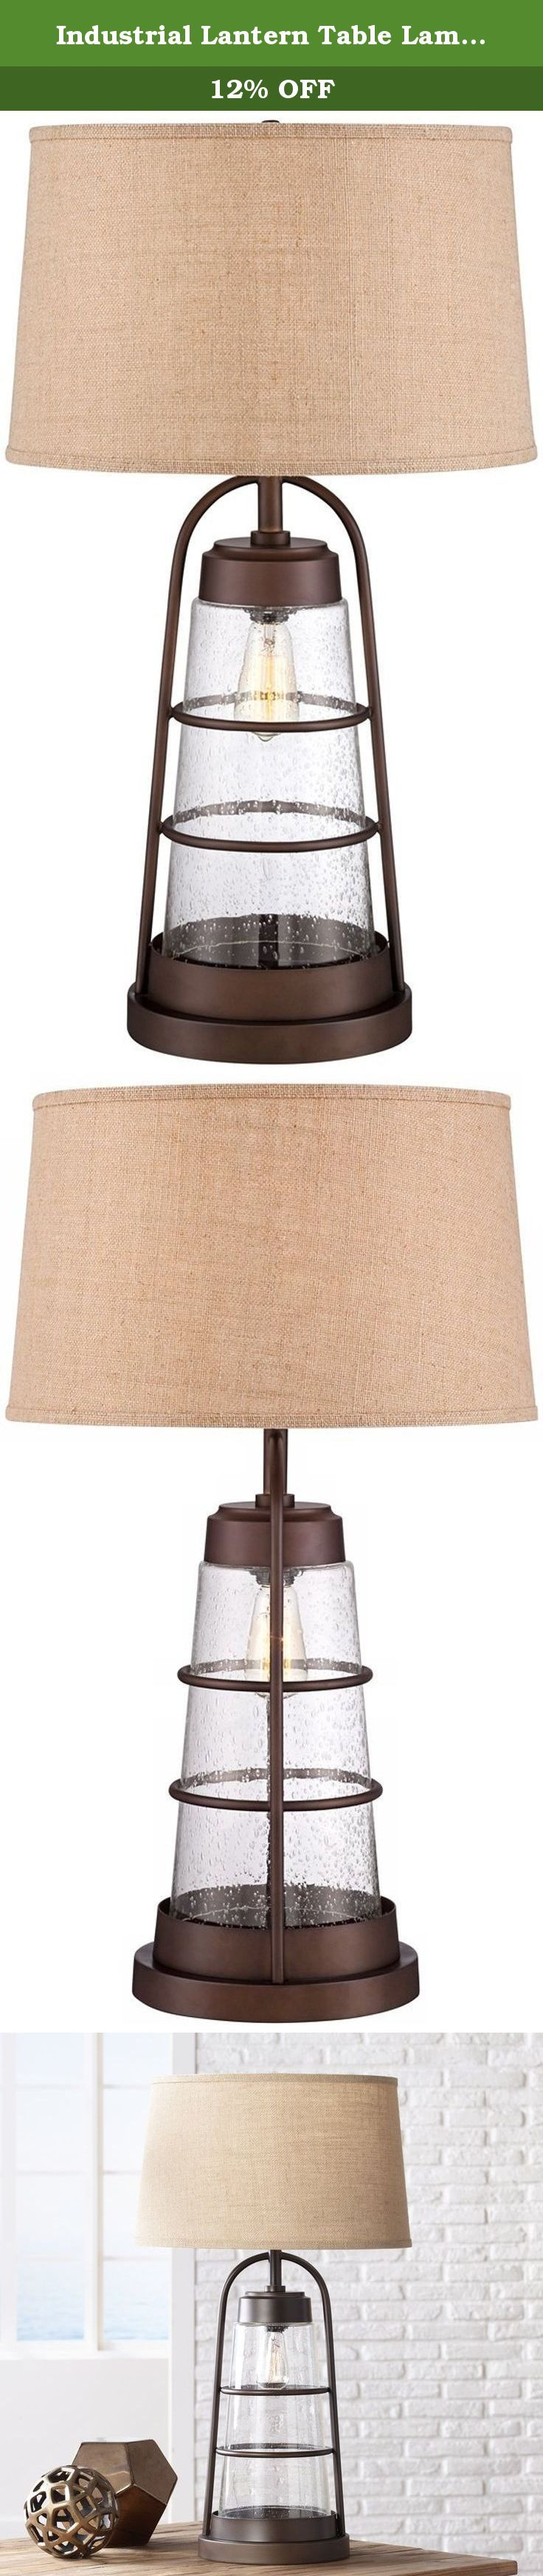 "Industrial Lantern Table Lamp with Night Light. Charm and convenience combine in this lantern-style table lamp. The industrial design features a cage-like base, wrapped around seeded glass, with an Edison bulb to light your way during the nighttime hours. A handsome burlap shade sits atop the design in a streamlined drum shape. - 31"" high x 10"" wide round base. - Shade is 16"" across the top, 18"" across the bottom, 11"" on the slant. - Takes one 150 watt medium base bulb (not included). -..."